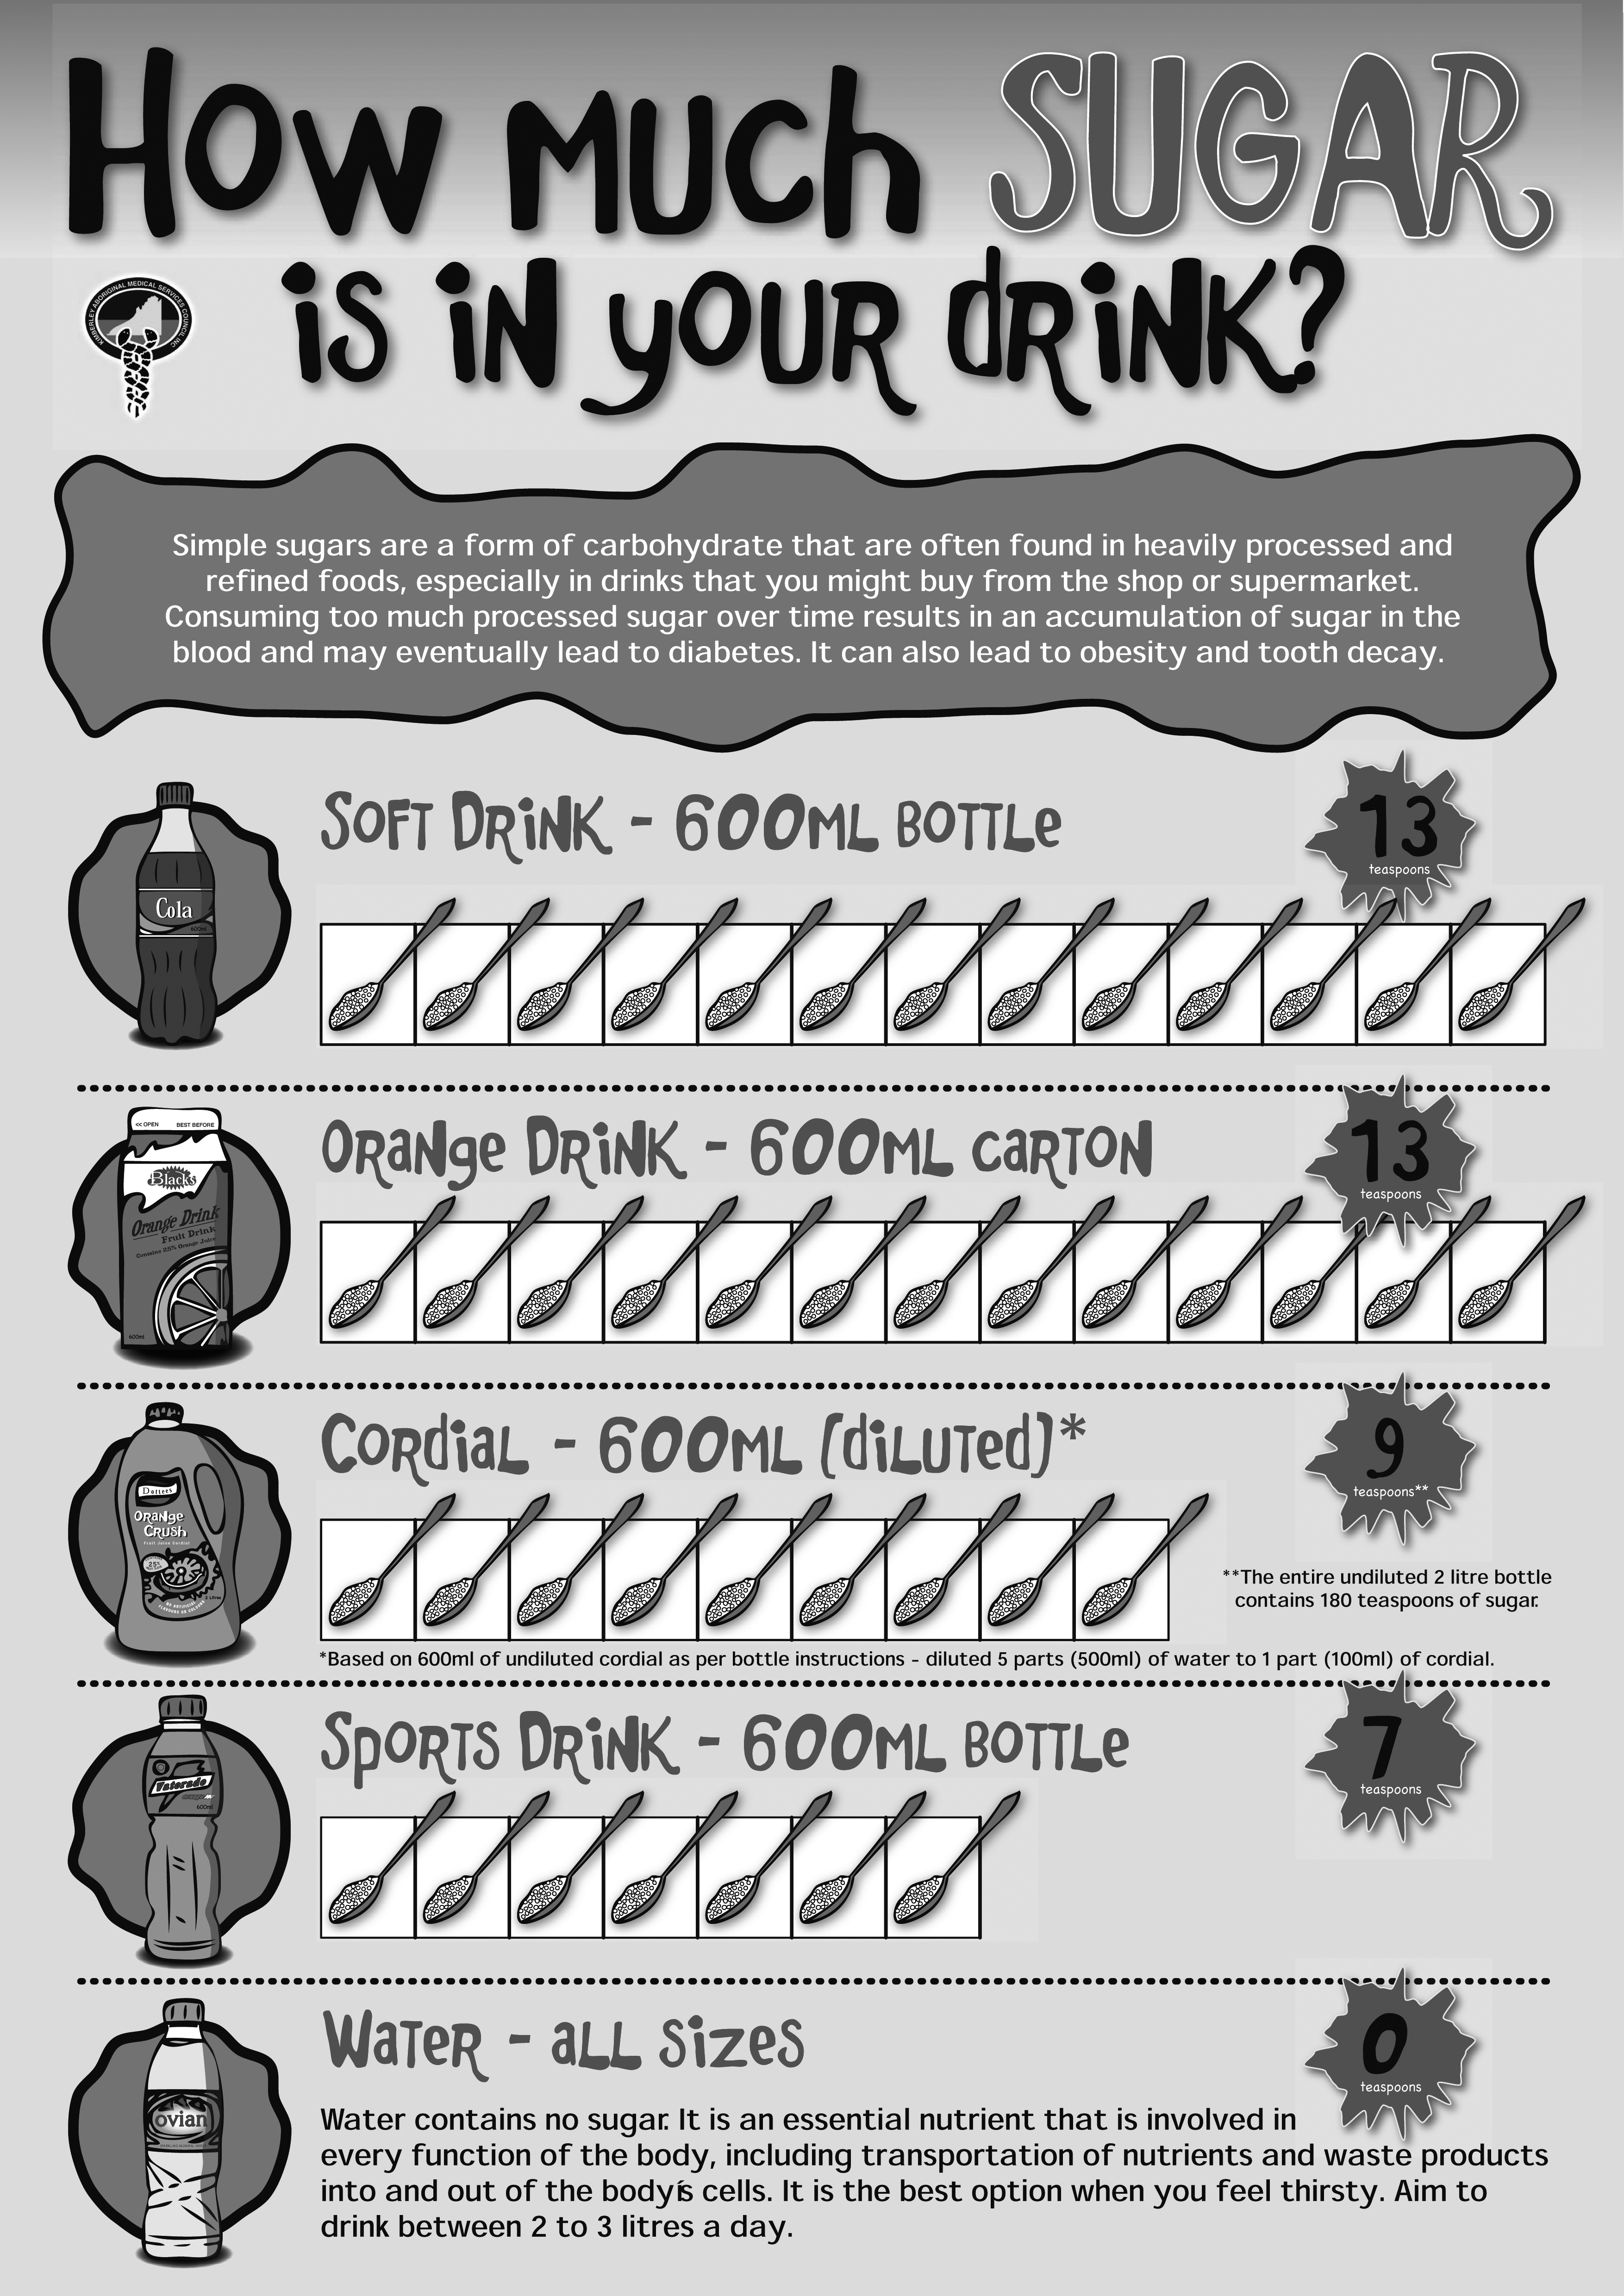 How much sugar is in your drink?